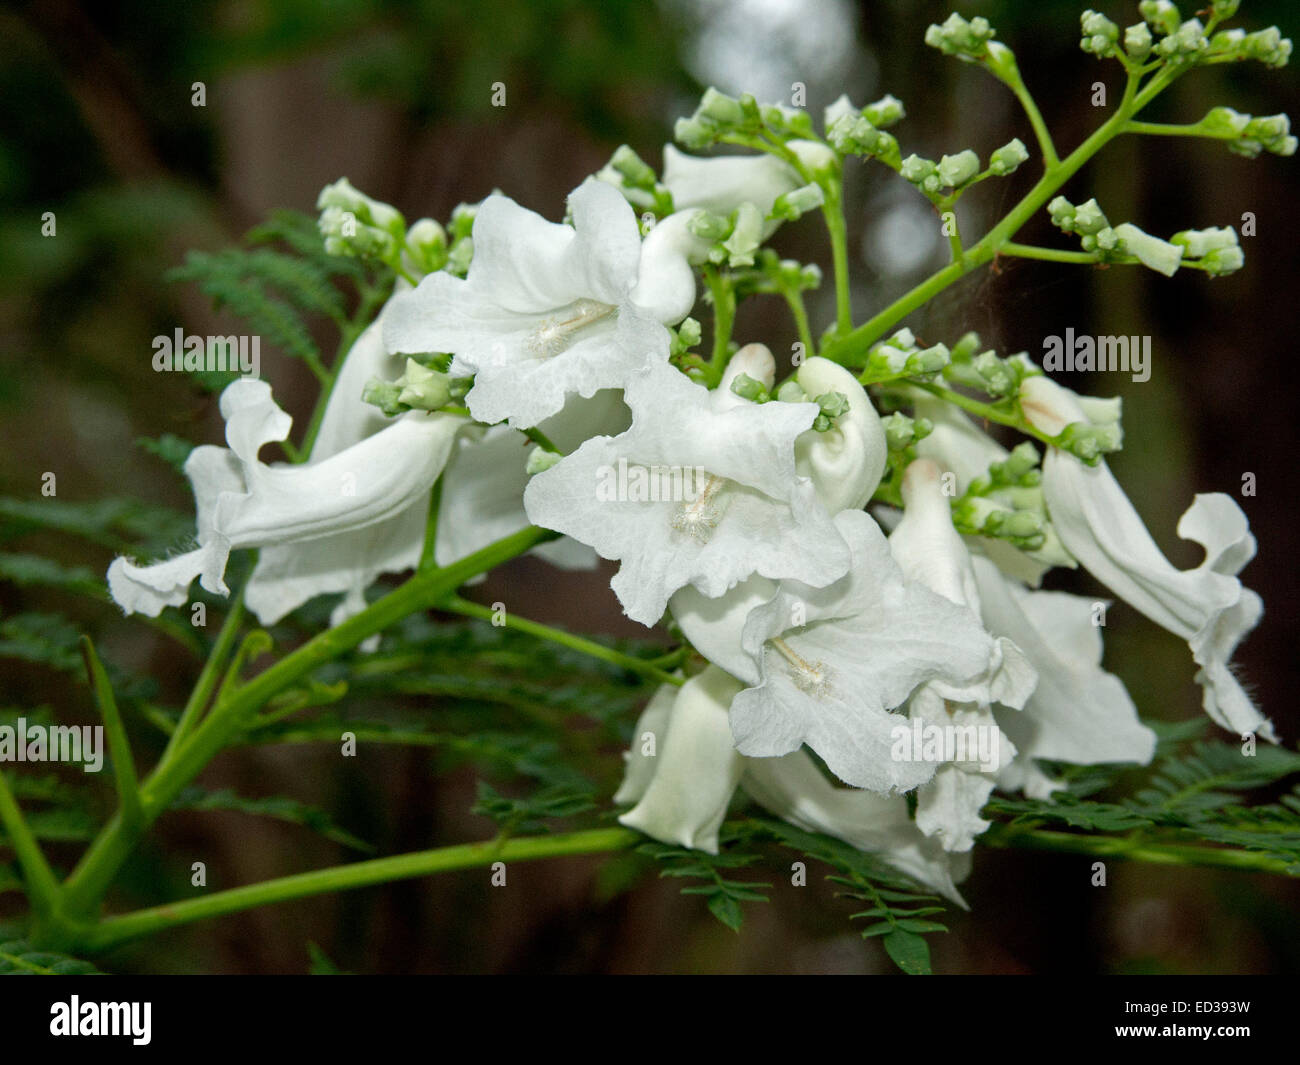 Cluster of flowers and buds of rare white flowered jacaranda tree cluster of flowers and buds of rare white flowered jacaranda tree white christmasagainst background of dark green leaves mightylinksfo